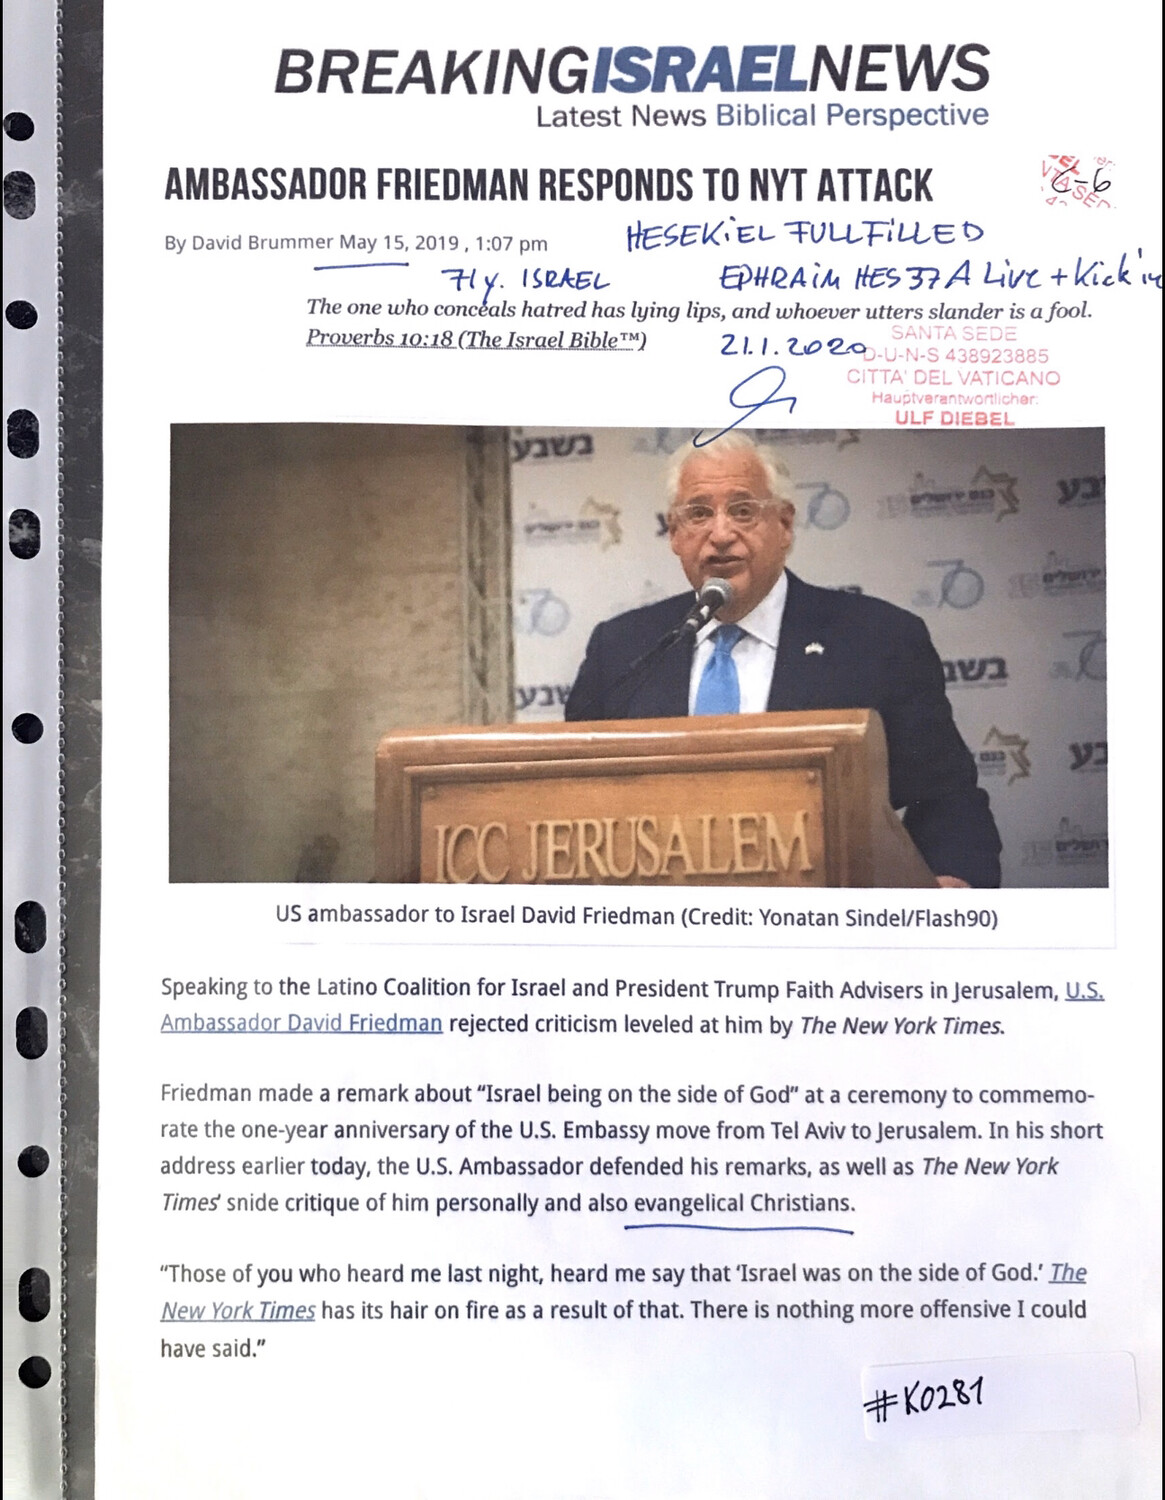 #K0281 l Breaking Israel News - Ambassador Friedman responds to NYT attack